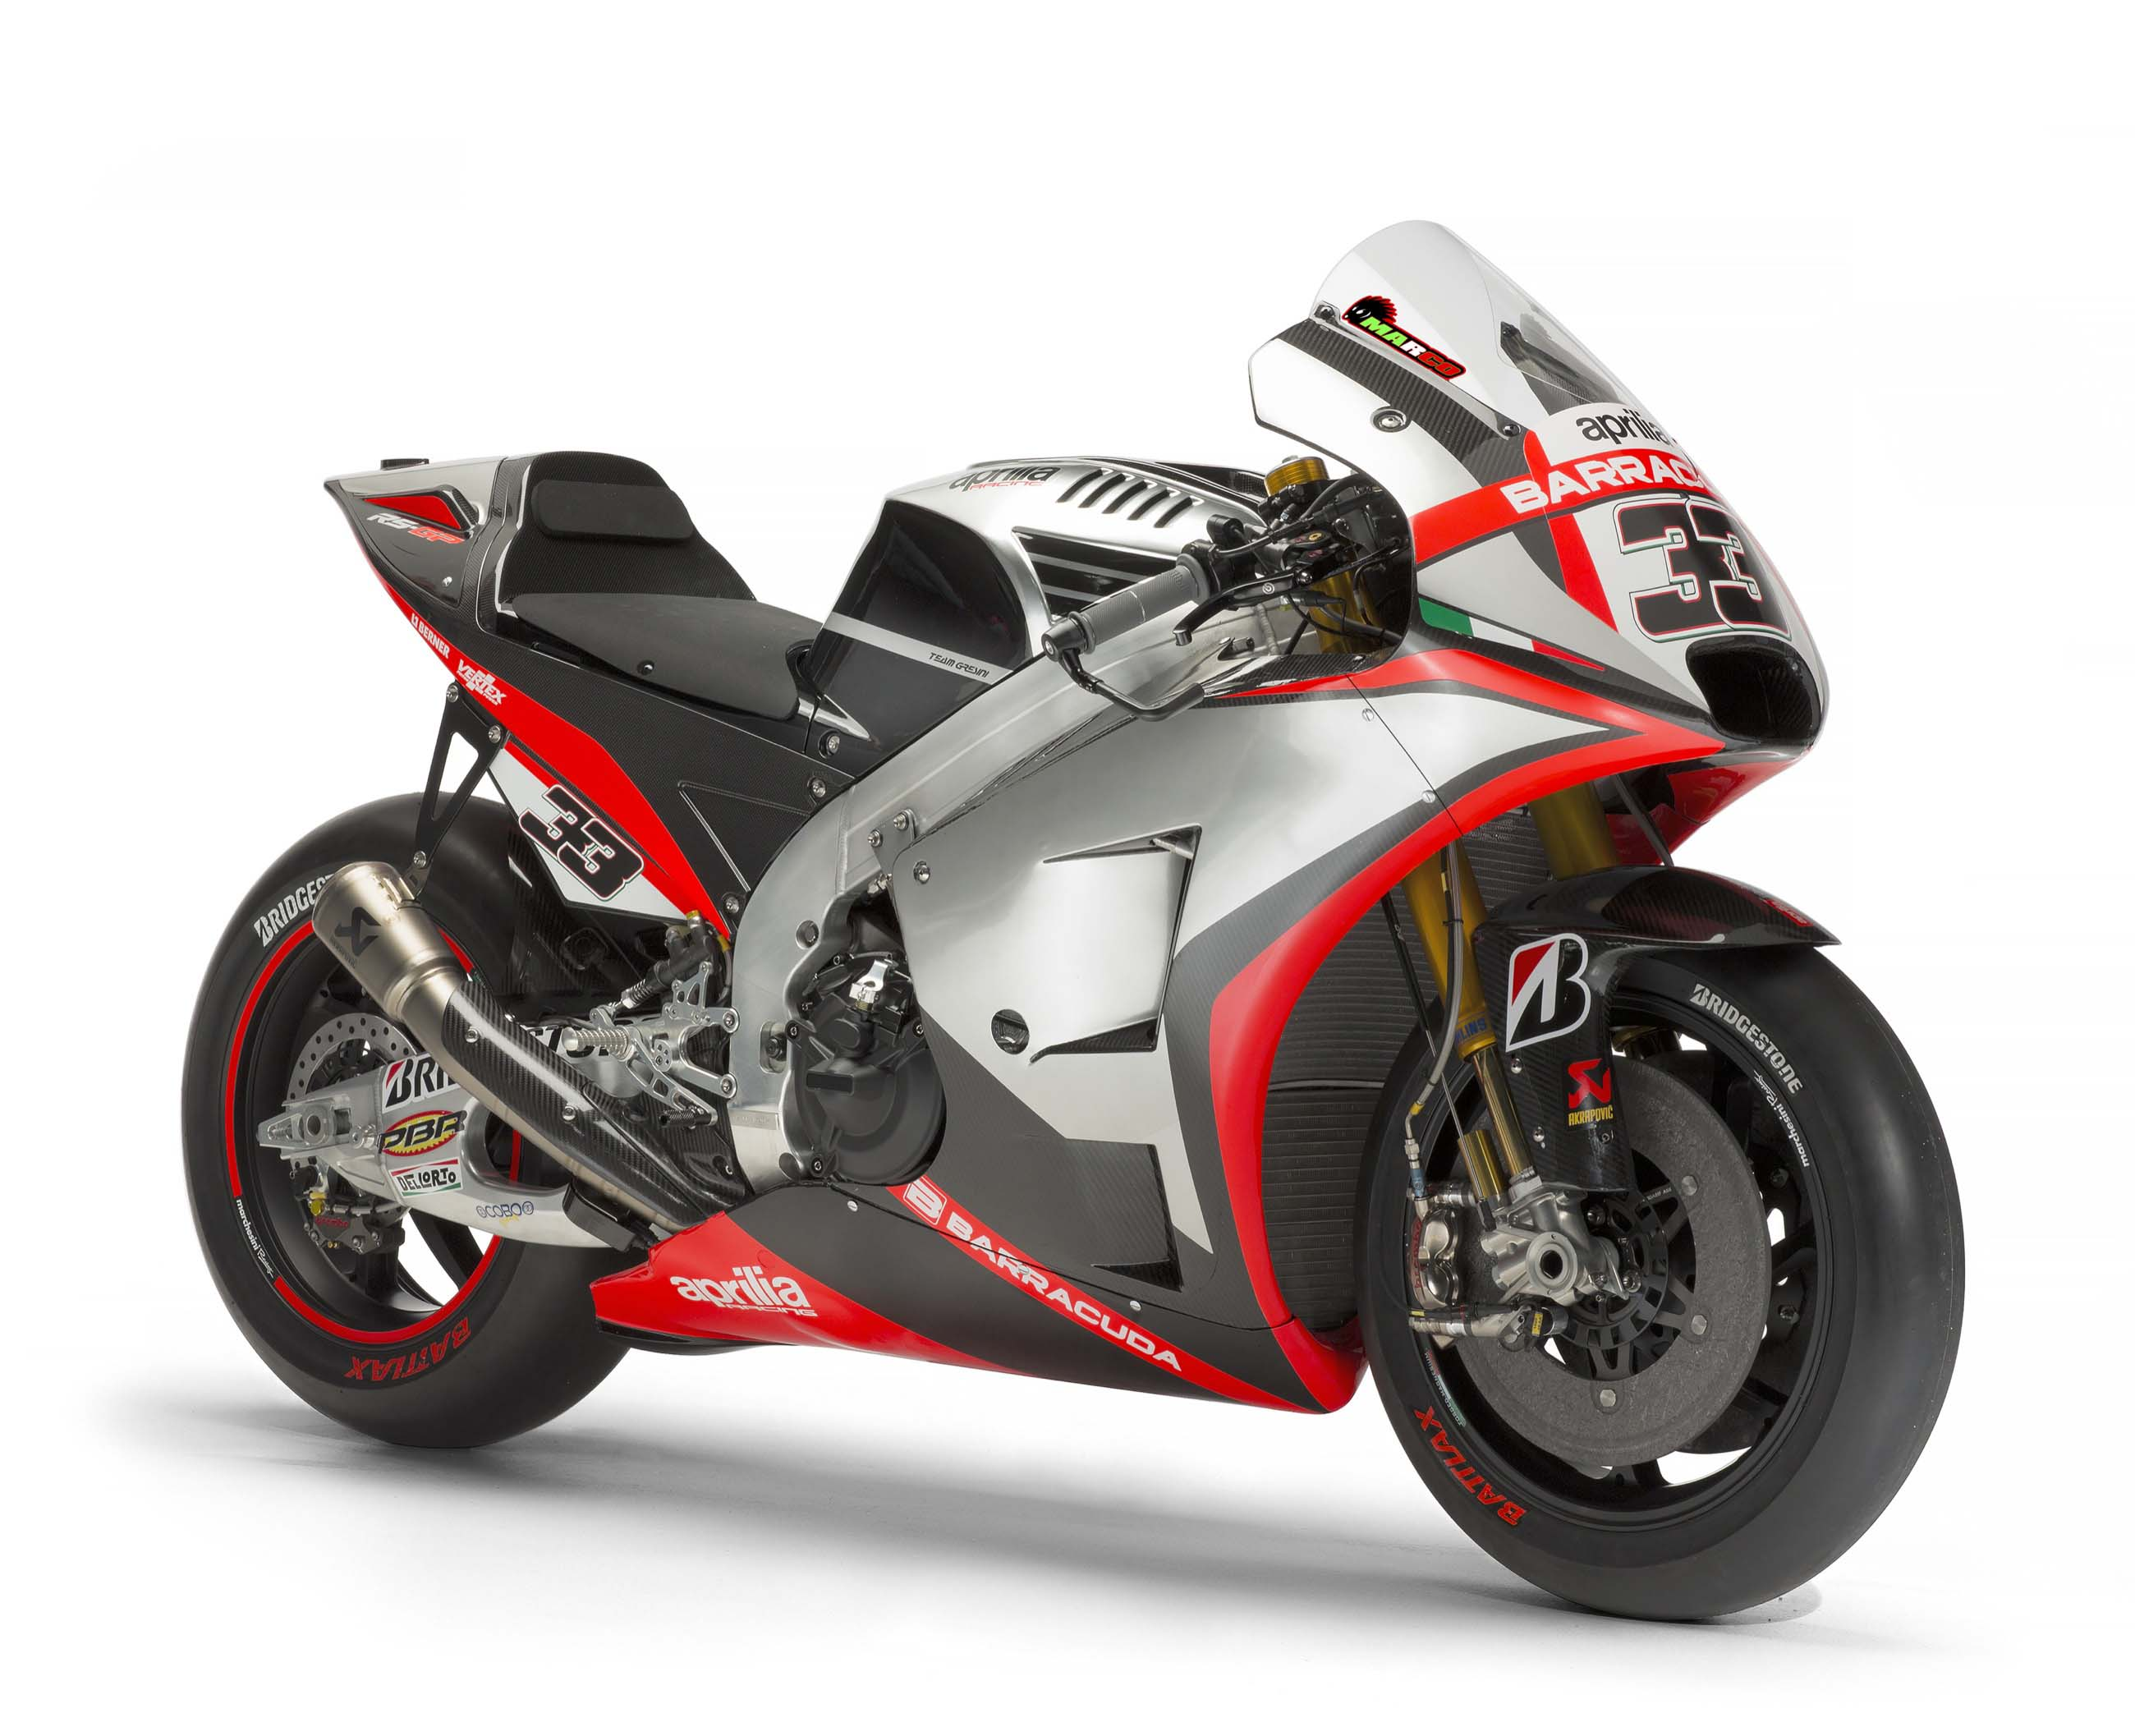 2015 Aprilia RS-GP MotoGP Race Bike Gallery - Asphalt & Rubber